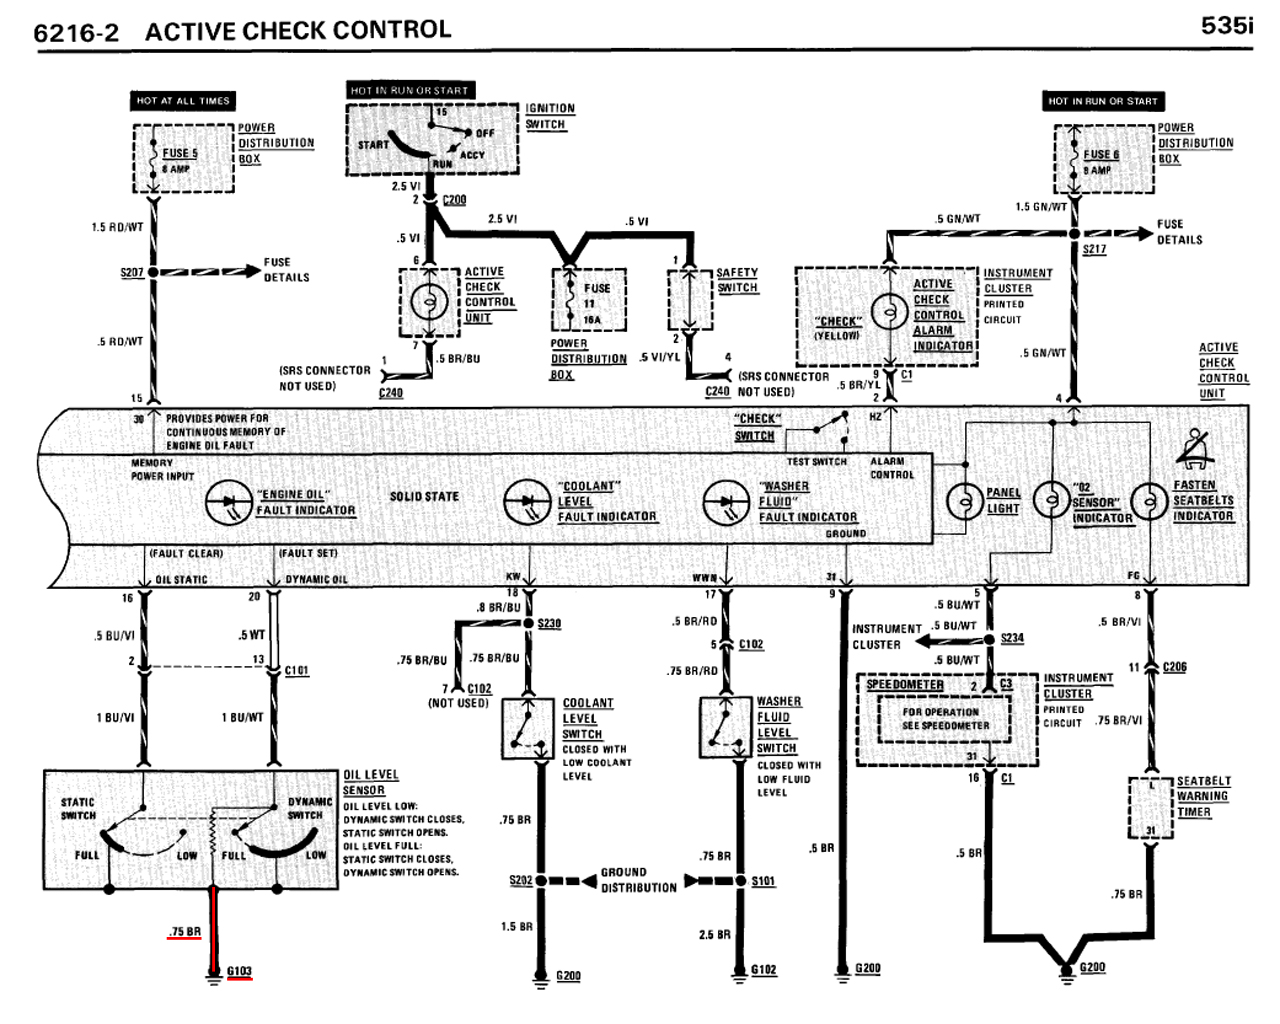 bmw e28 535i wiring diagram 2002 chevy pick up tail light wiring diagram wiring library  2002 chevy pick up tail light wiring